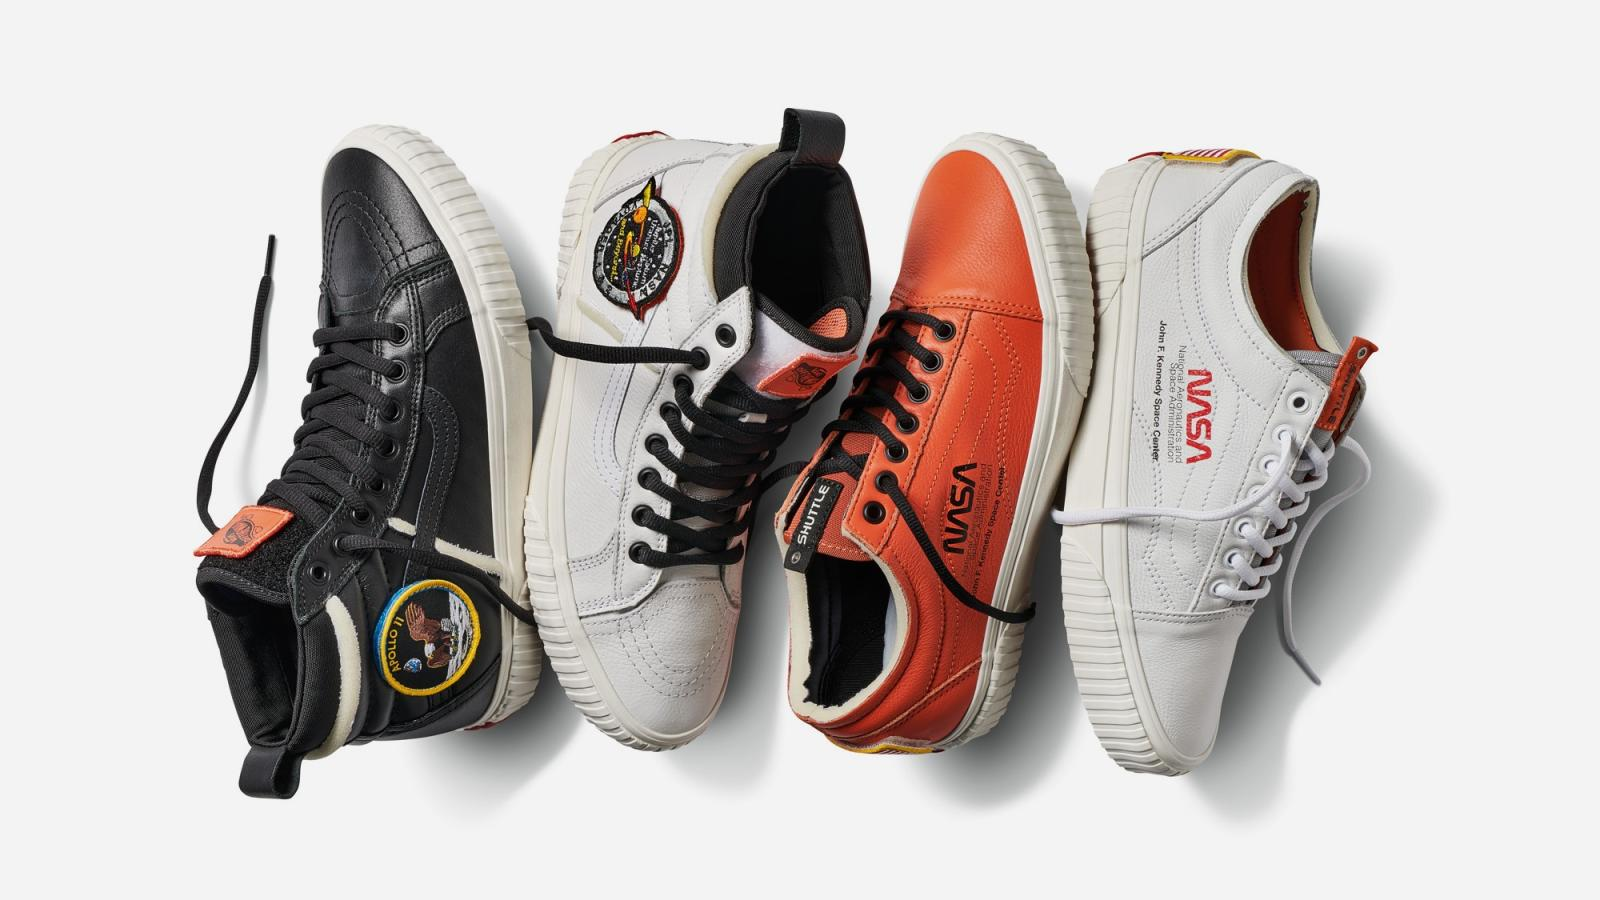 From Vans to Heron Preston, NASA is all over fashion right